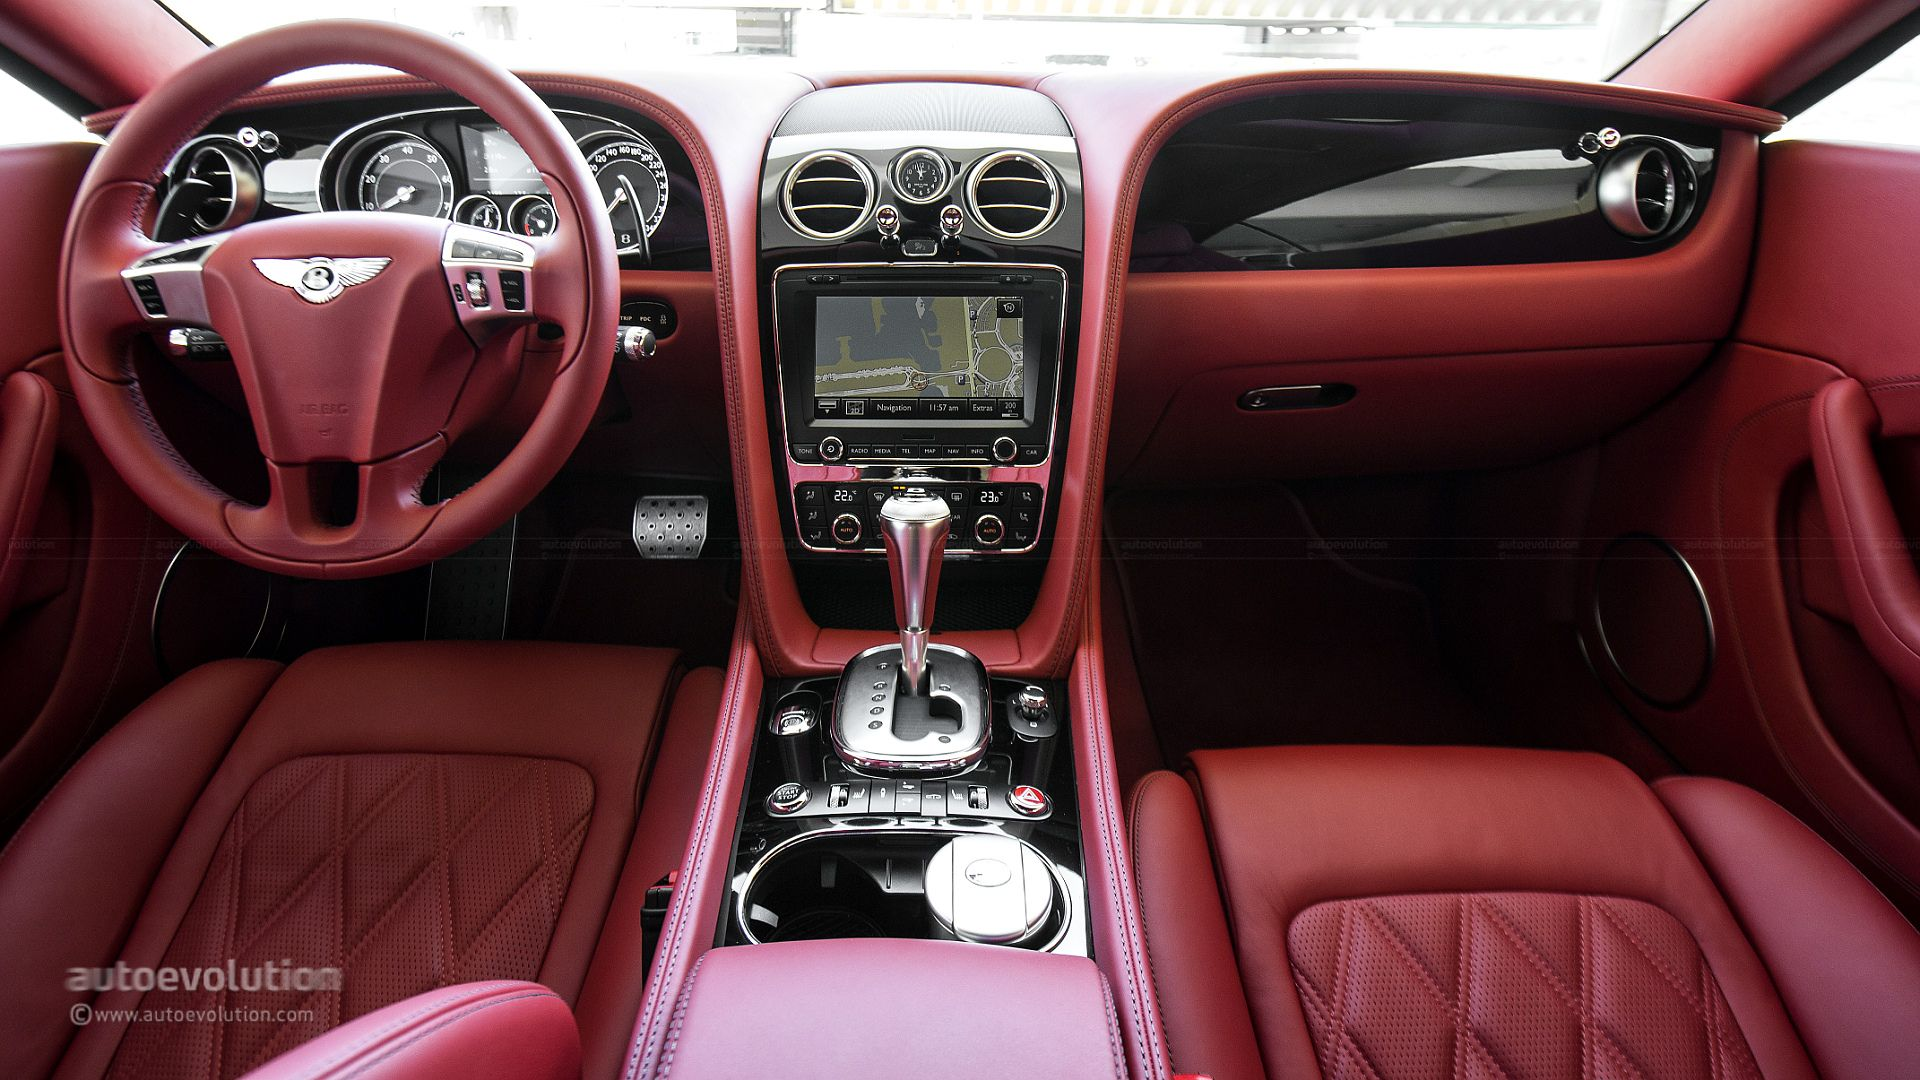 Bentley continental gt w12 review autoevolution - Bentley Continental Gt V8 Dashboard